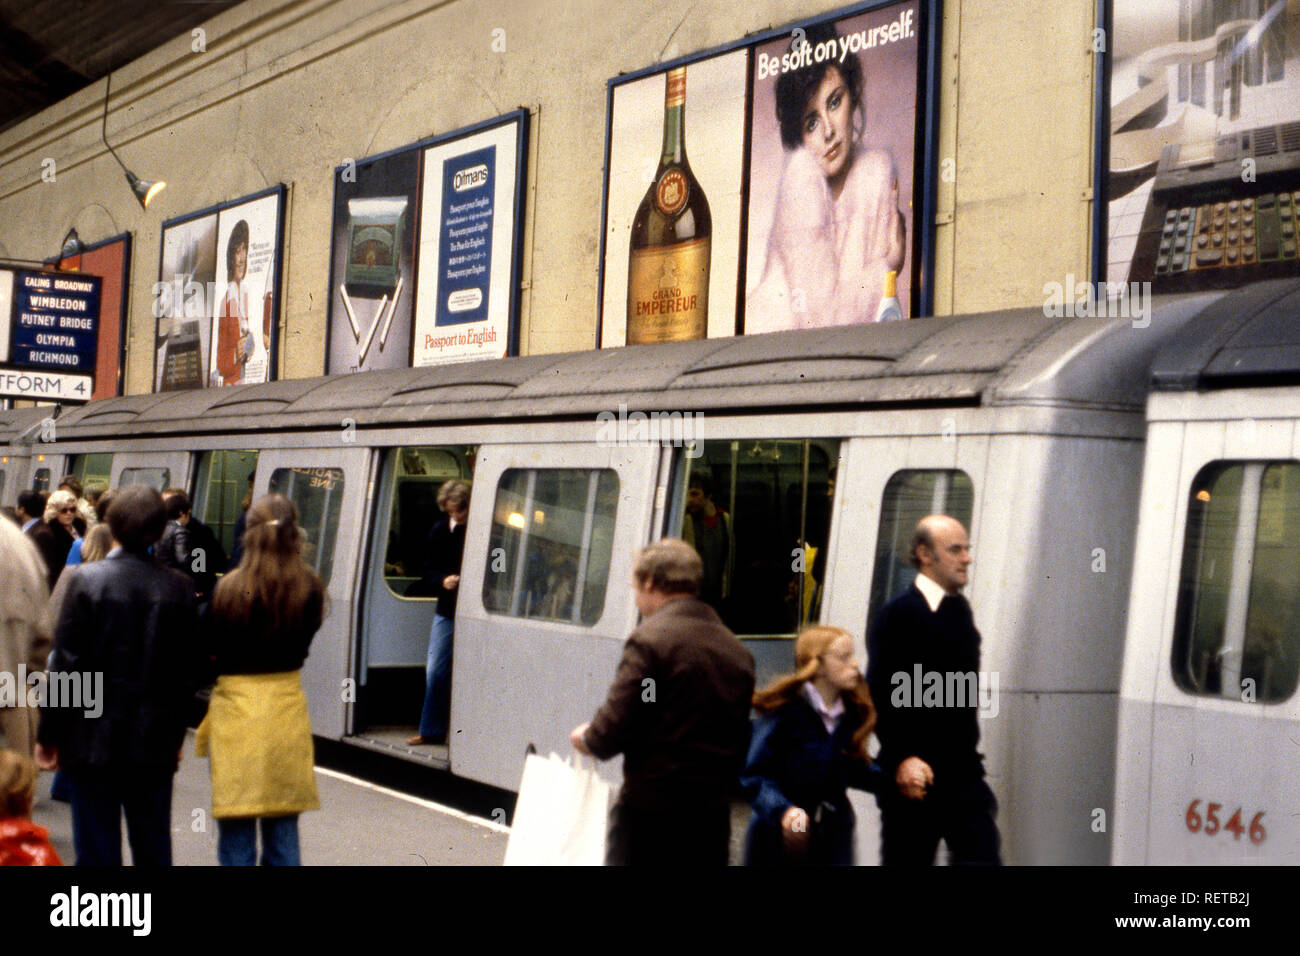 Subway with advertising posters in London circa 1970s - Stock Image